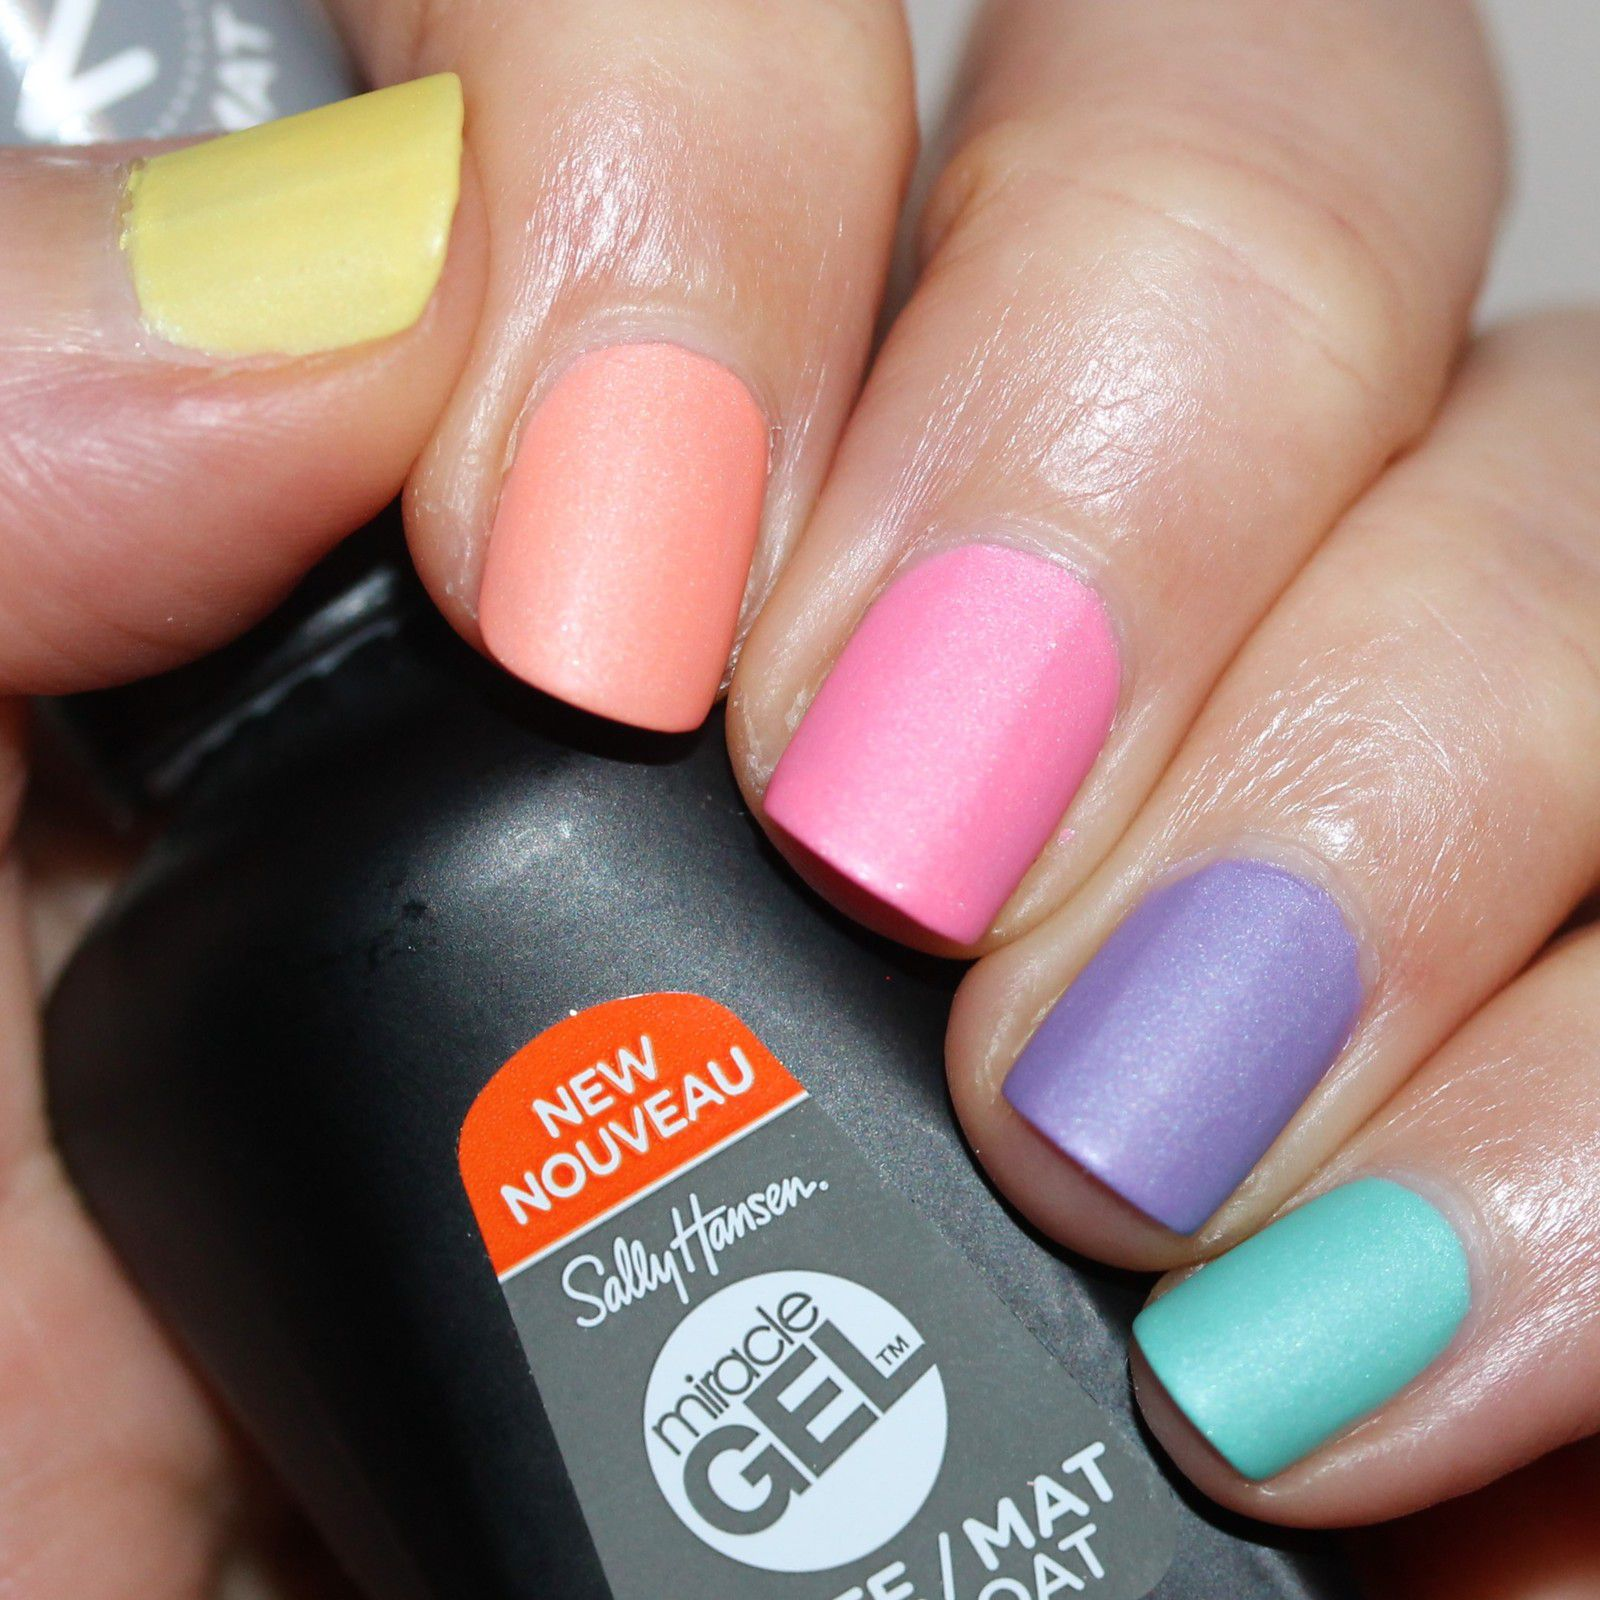 Essie Fill The Gap Base Coat / Superchic lacquer Law Of Nature, Cause and Effect, Happenstance, Synchronicity & Crystal Blue Persuasion / Sally Hansen Miracle Gel Top Coat Matte